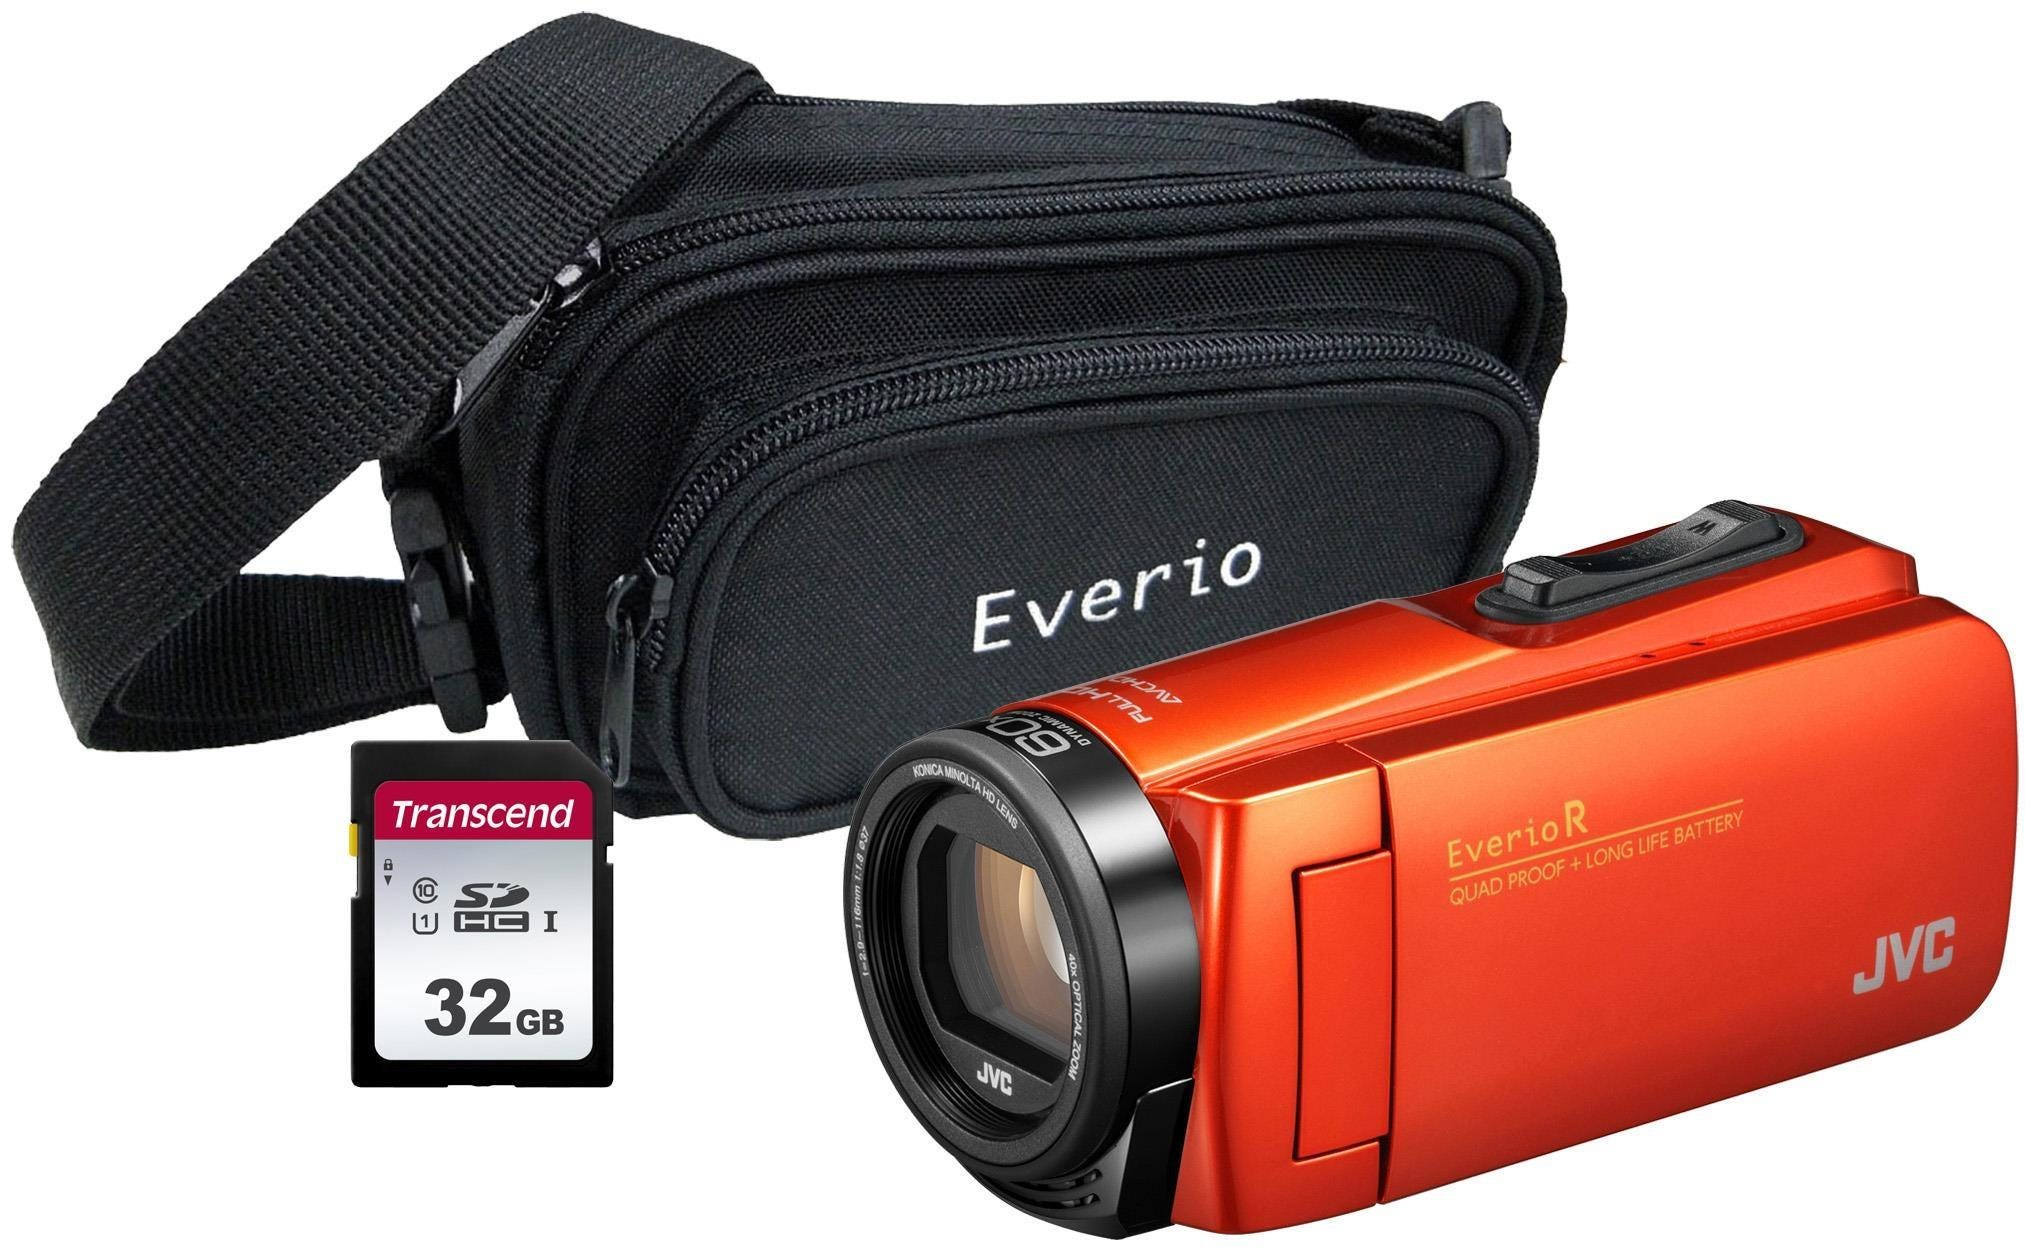 JVC GZ-R495 4GB Memory HD Quad Proof Camcorder Kit including 32GB SD and Case - Orange